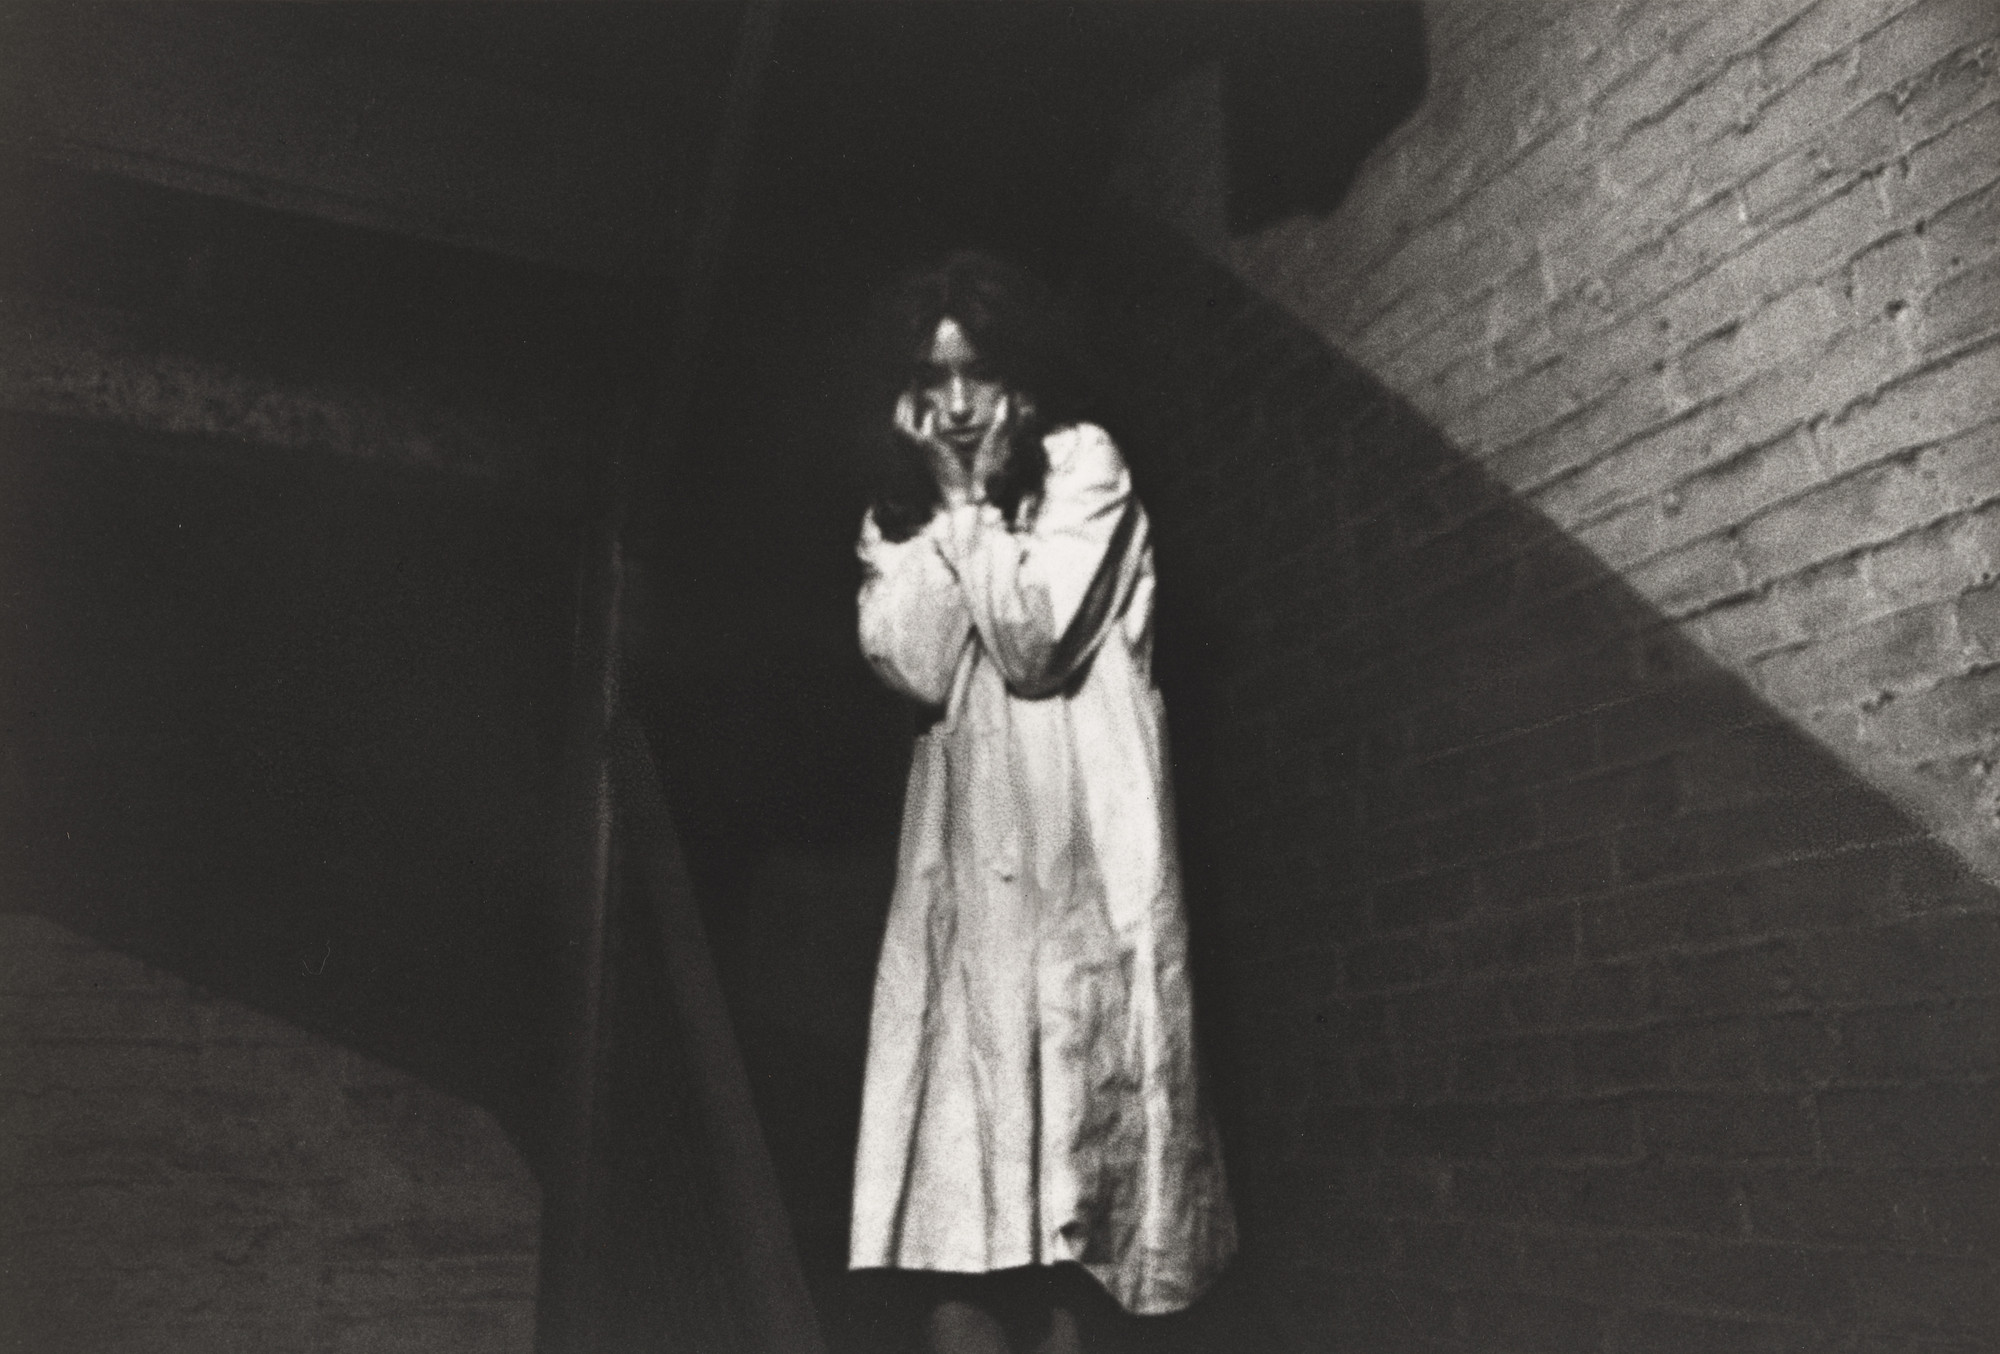 Cindy Sherman. Untitled Film Still #26. 1979